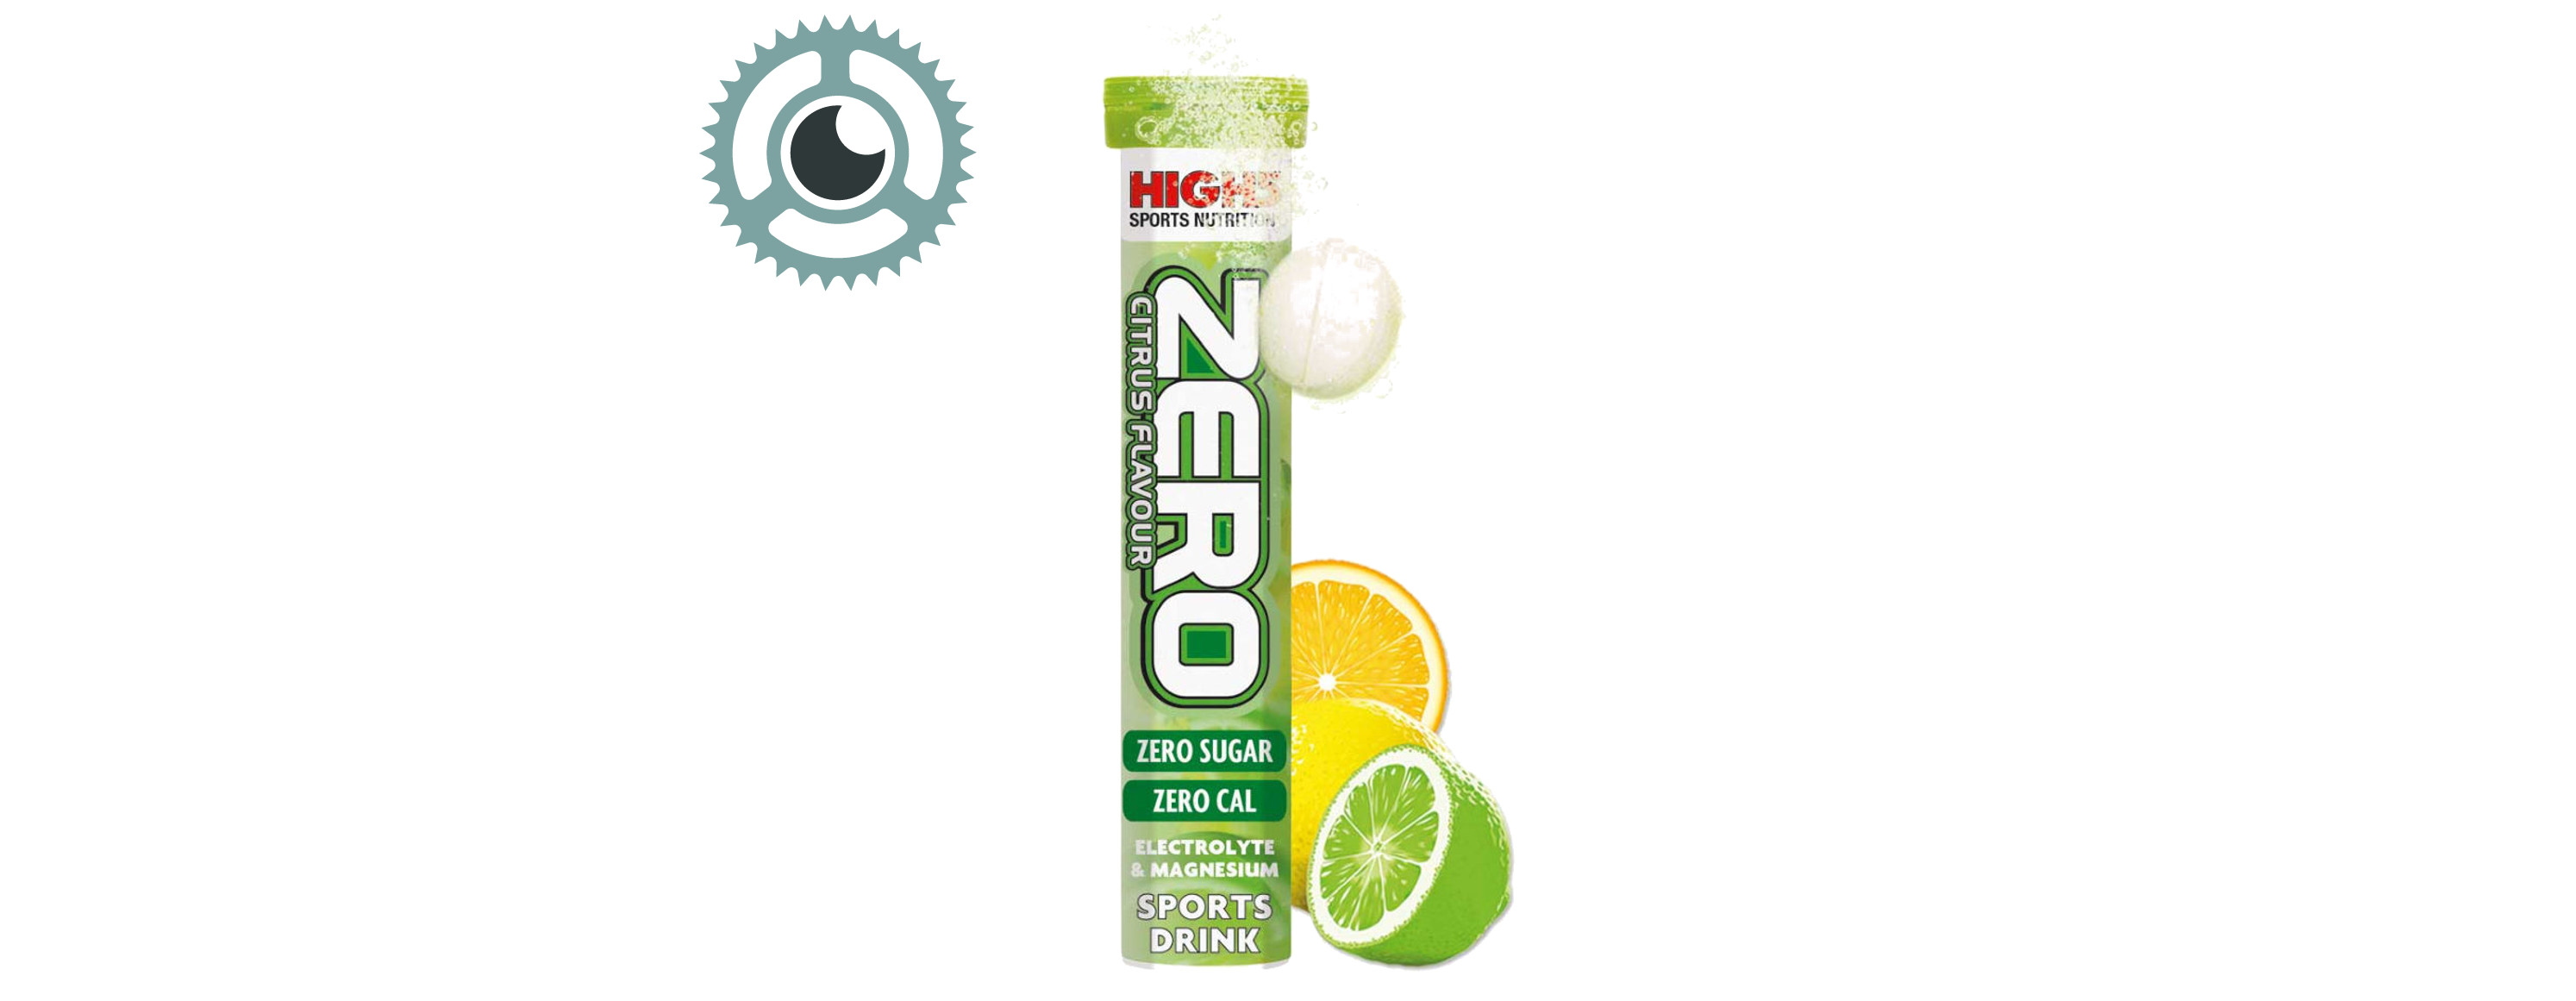 High5-Zero-Electrolyte-Drink - Toadys Deals.jpg